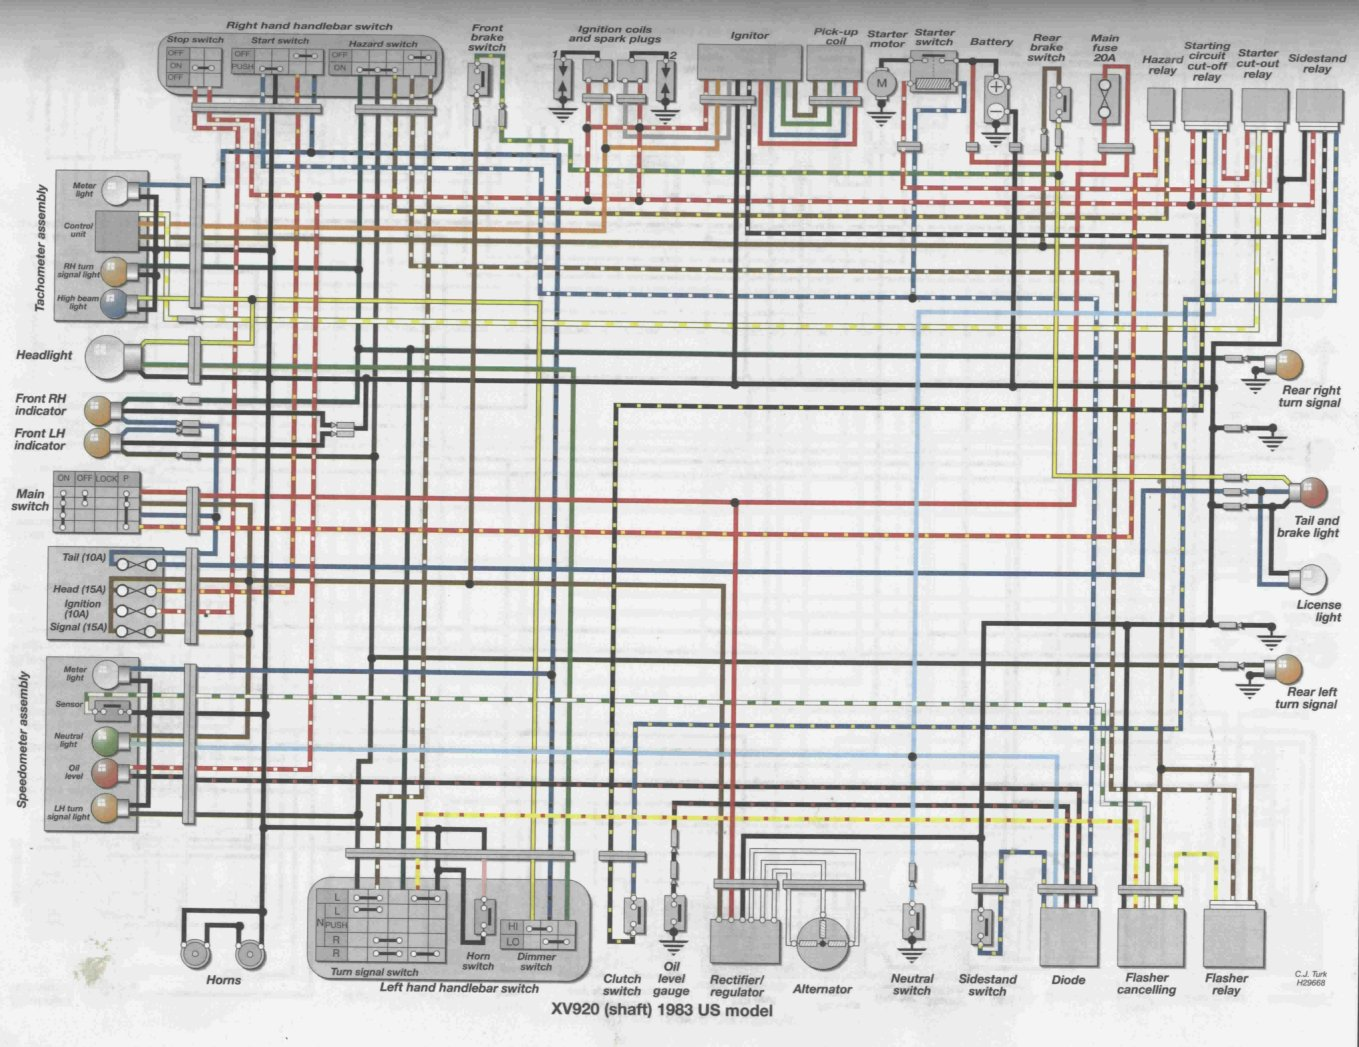 yamaha v star 950 wiring diagram wiring diagram full version hd quality wiring  diagram - marc-diagram.changezvotrevie.fr  diagram database - changezvotrevie.fr